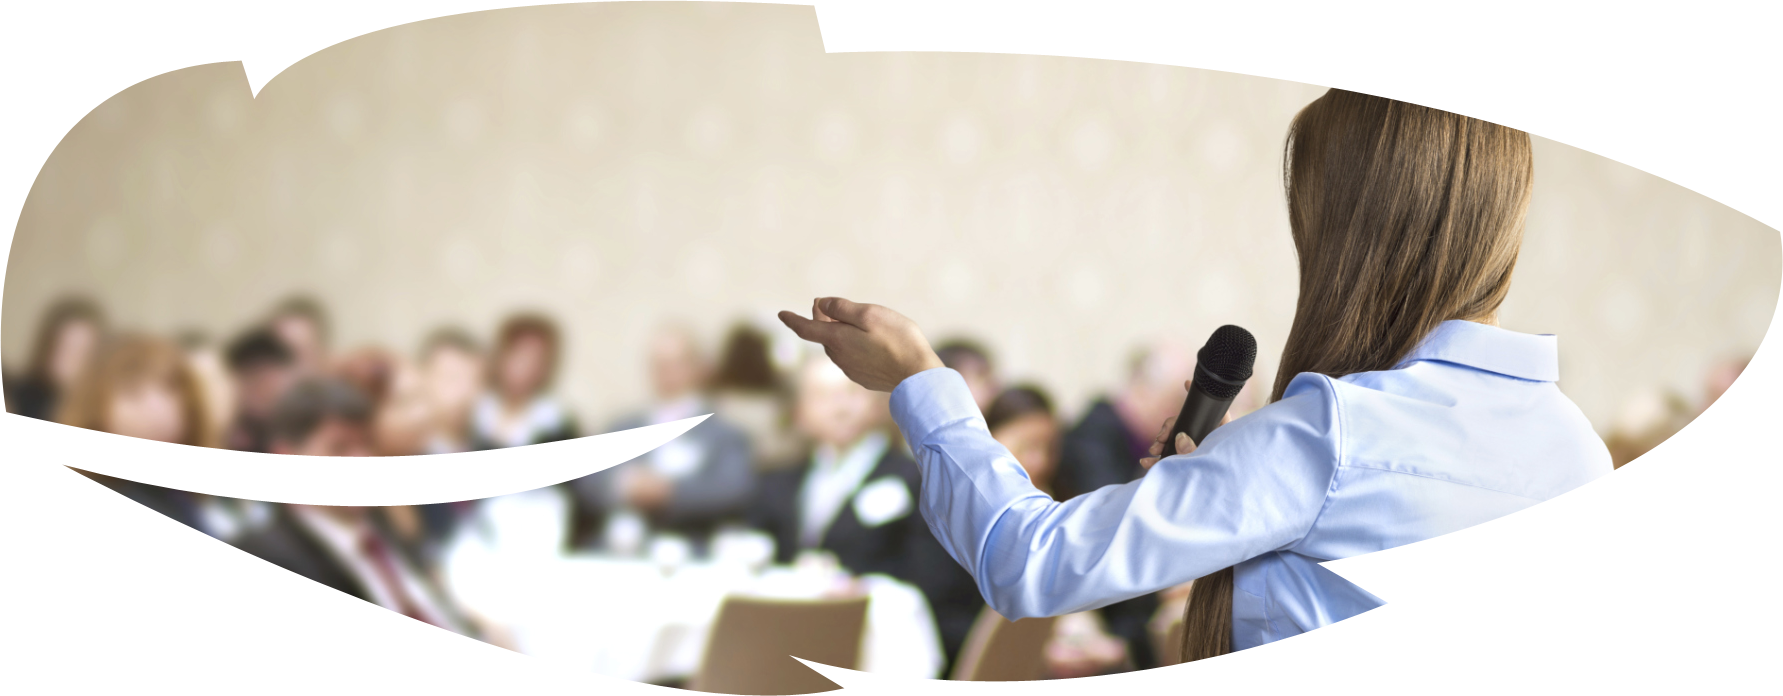 Prosperity Bookkeeping Seminars and Workshops Events